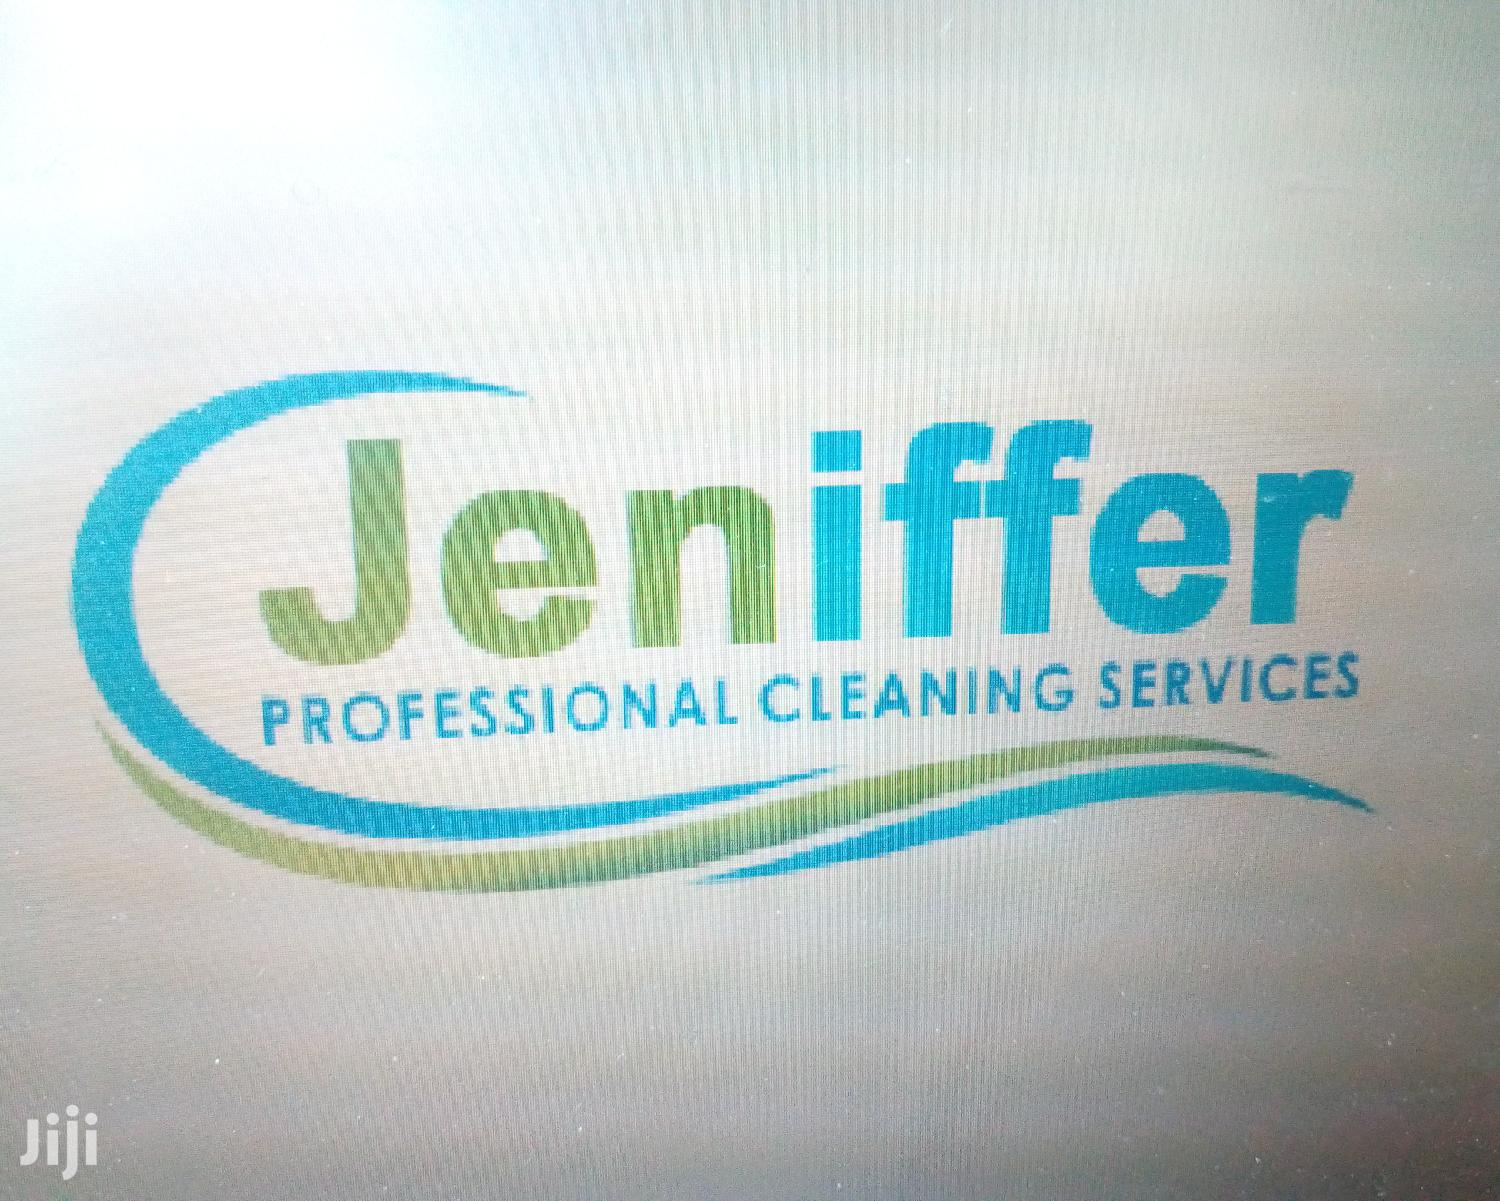 Jeniffer Rofessional Cleaning Services